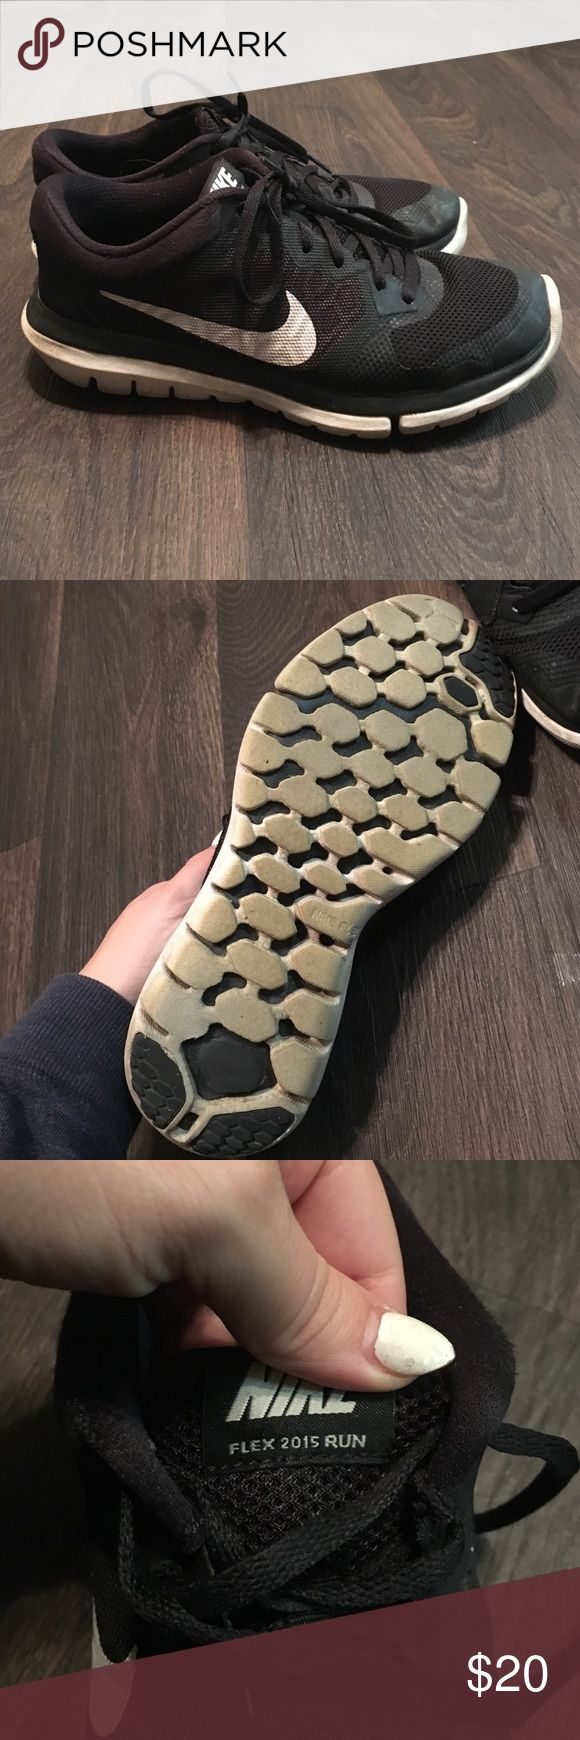 nike flex run nike 2015 flex run. these are the comfiest pair of sneakers i own. they are great for working long hours on your feet or for going to the gym. these are still in good condition and a great deal! Nike Shoes Athletic Shoes